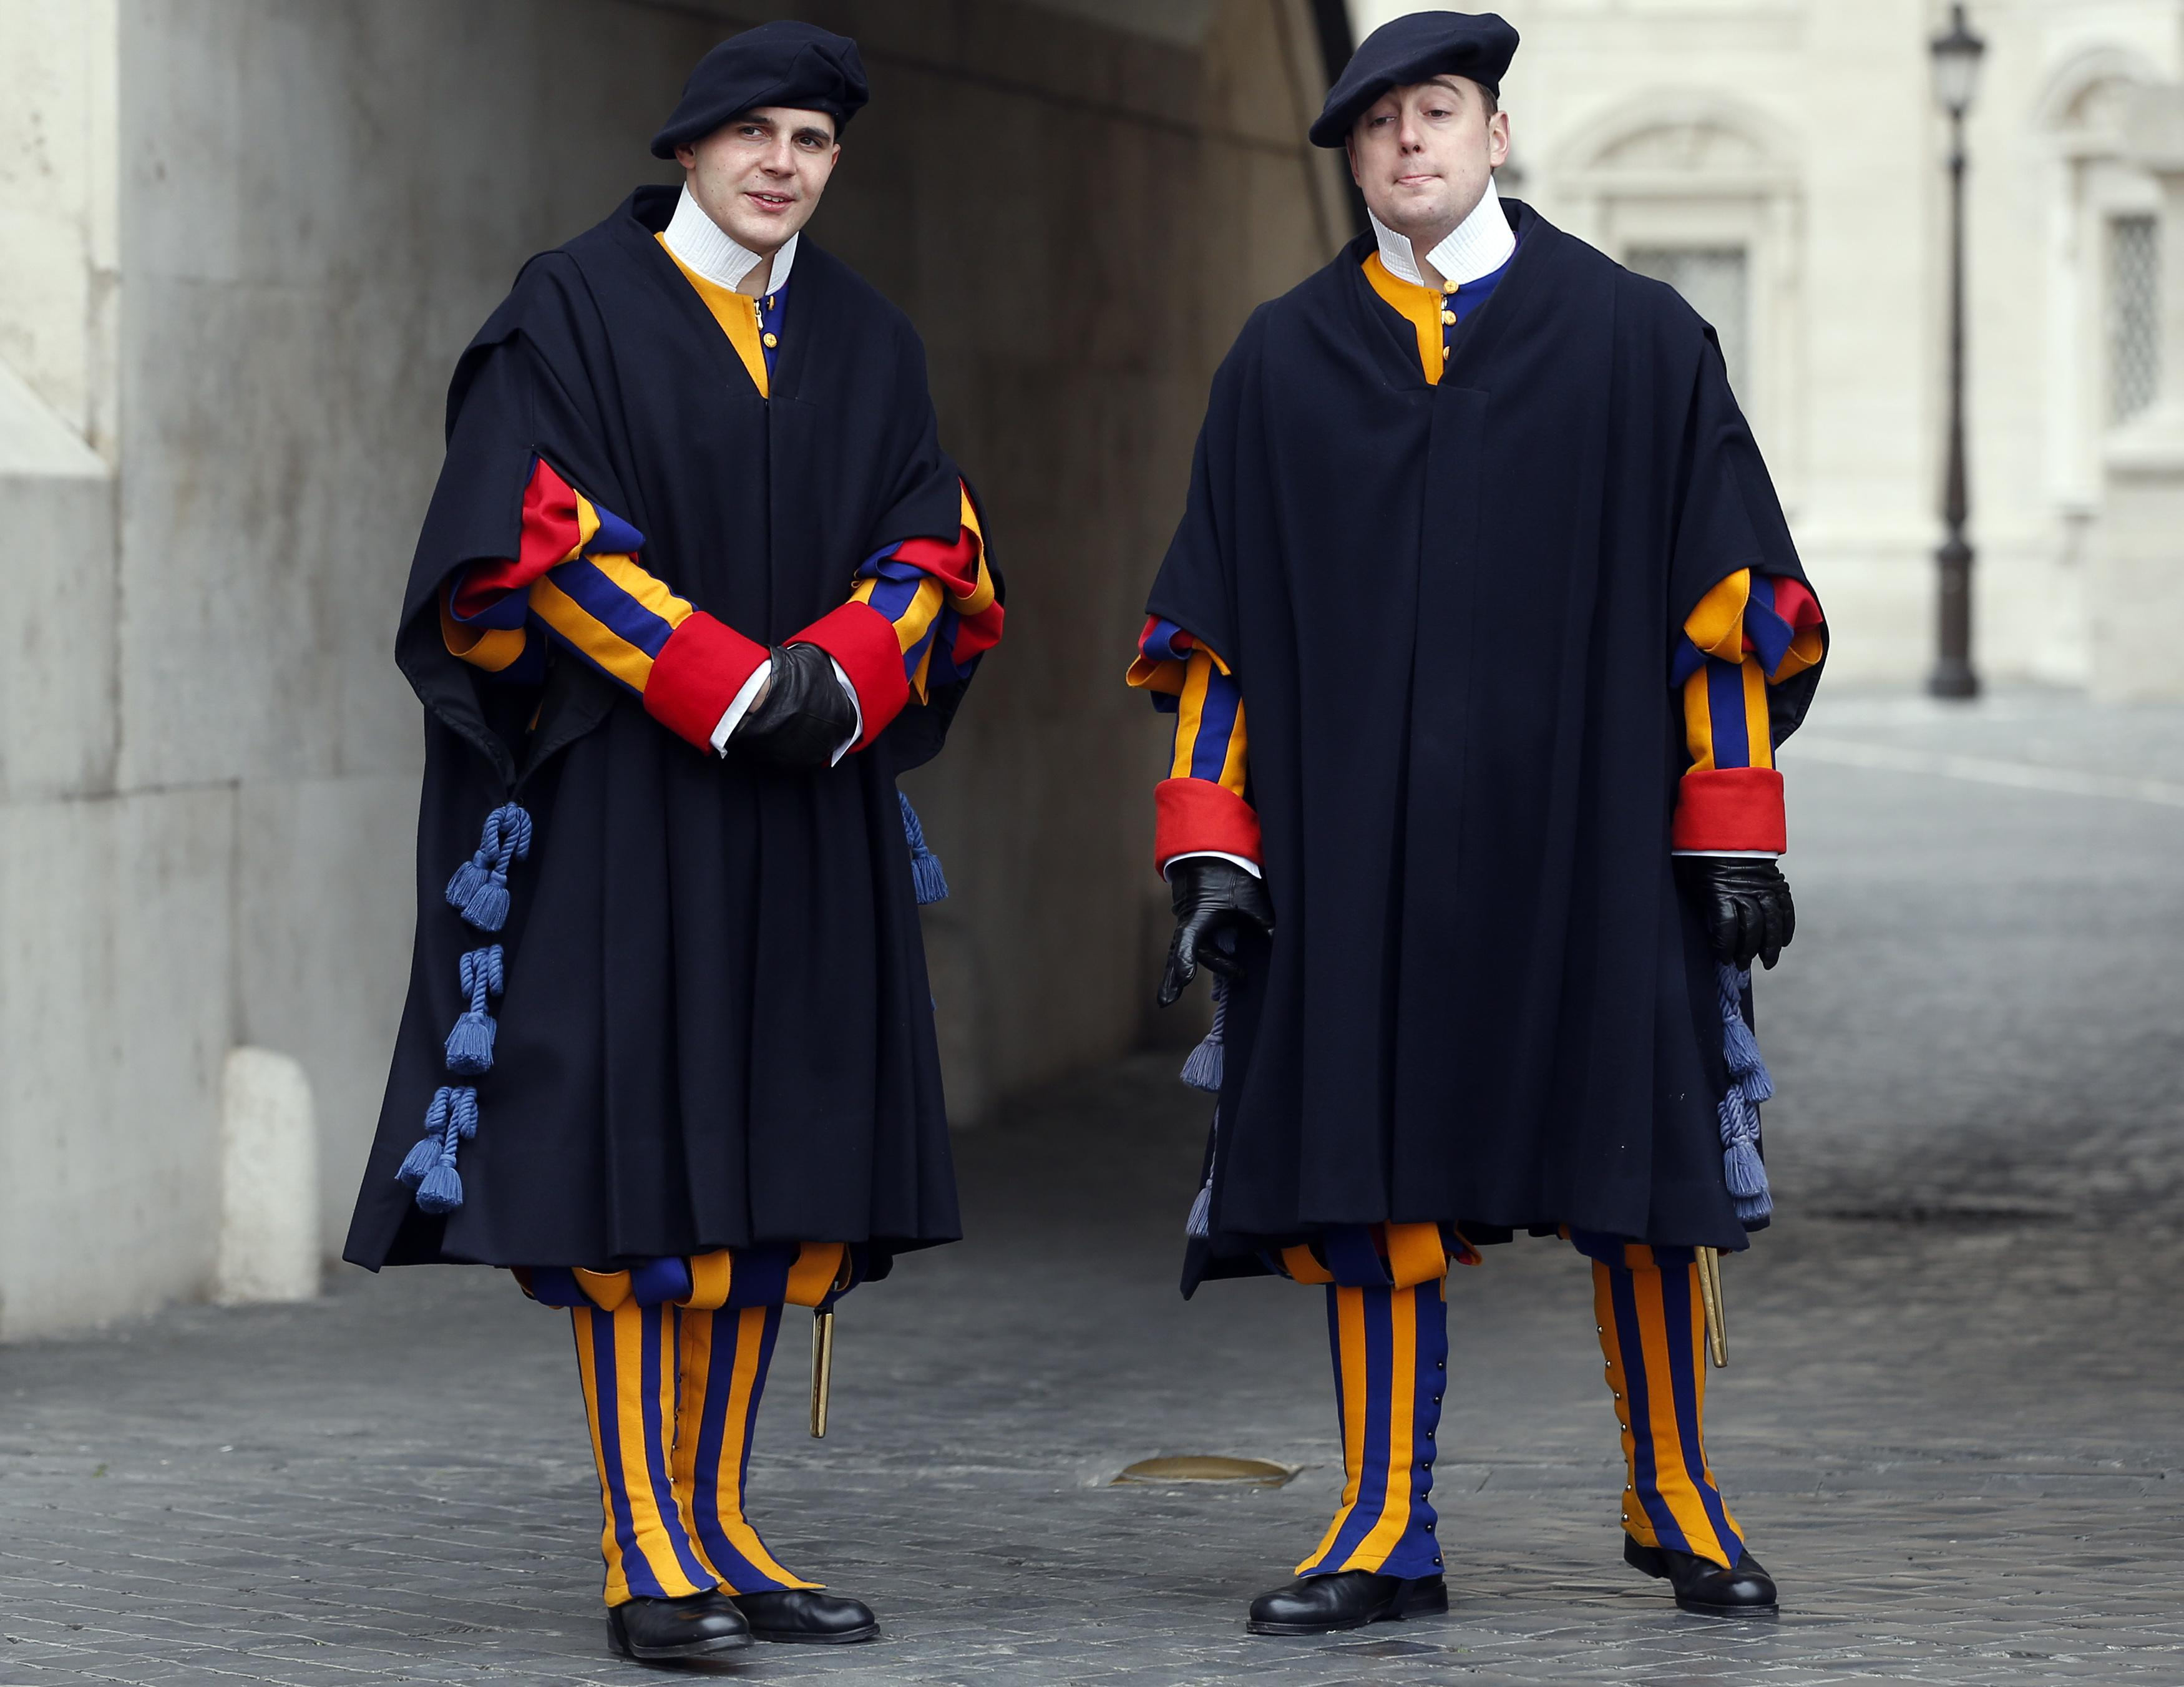 Swiss Guards with capes